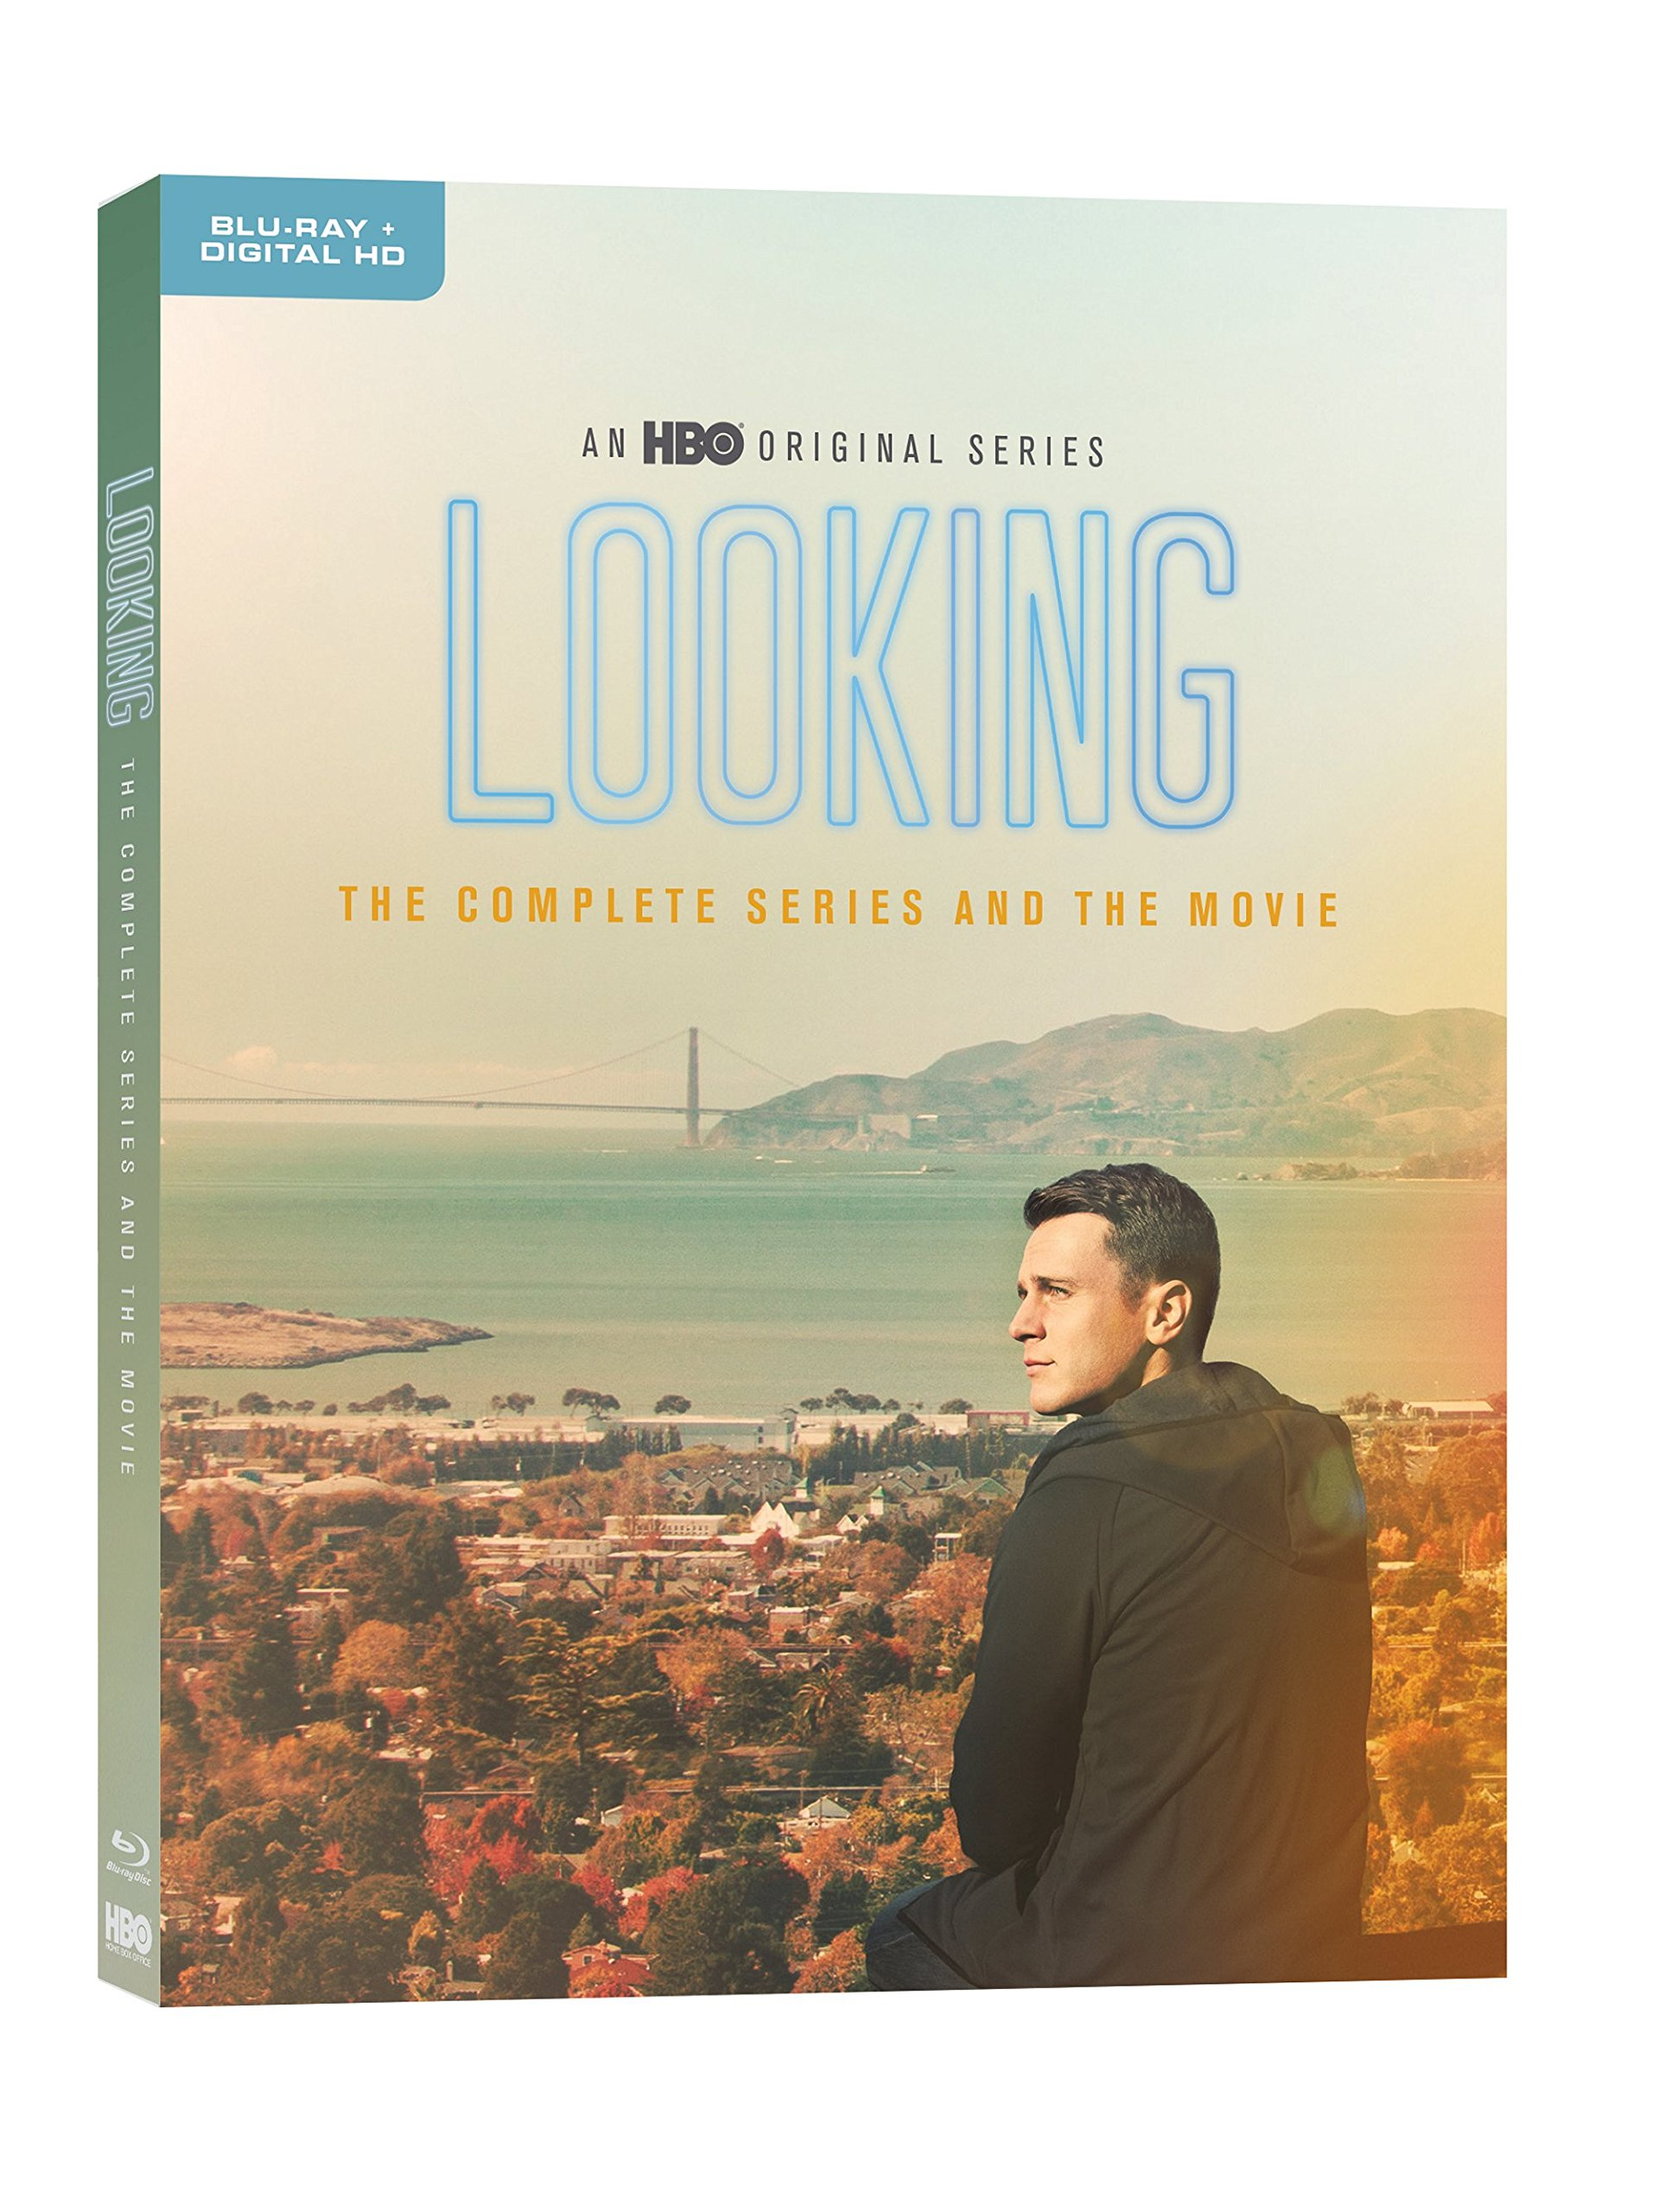 Blu-ray : Looking: The Complete Series & Movie (Ultraviolet Digital Copy, Full Frame, 2 Pack, Digital Theater System, Dolby)